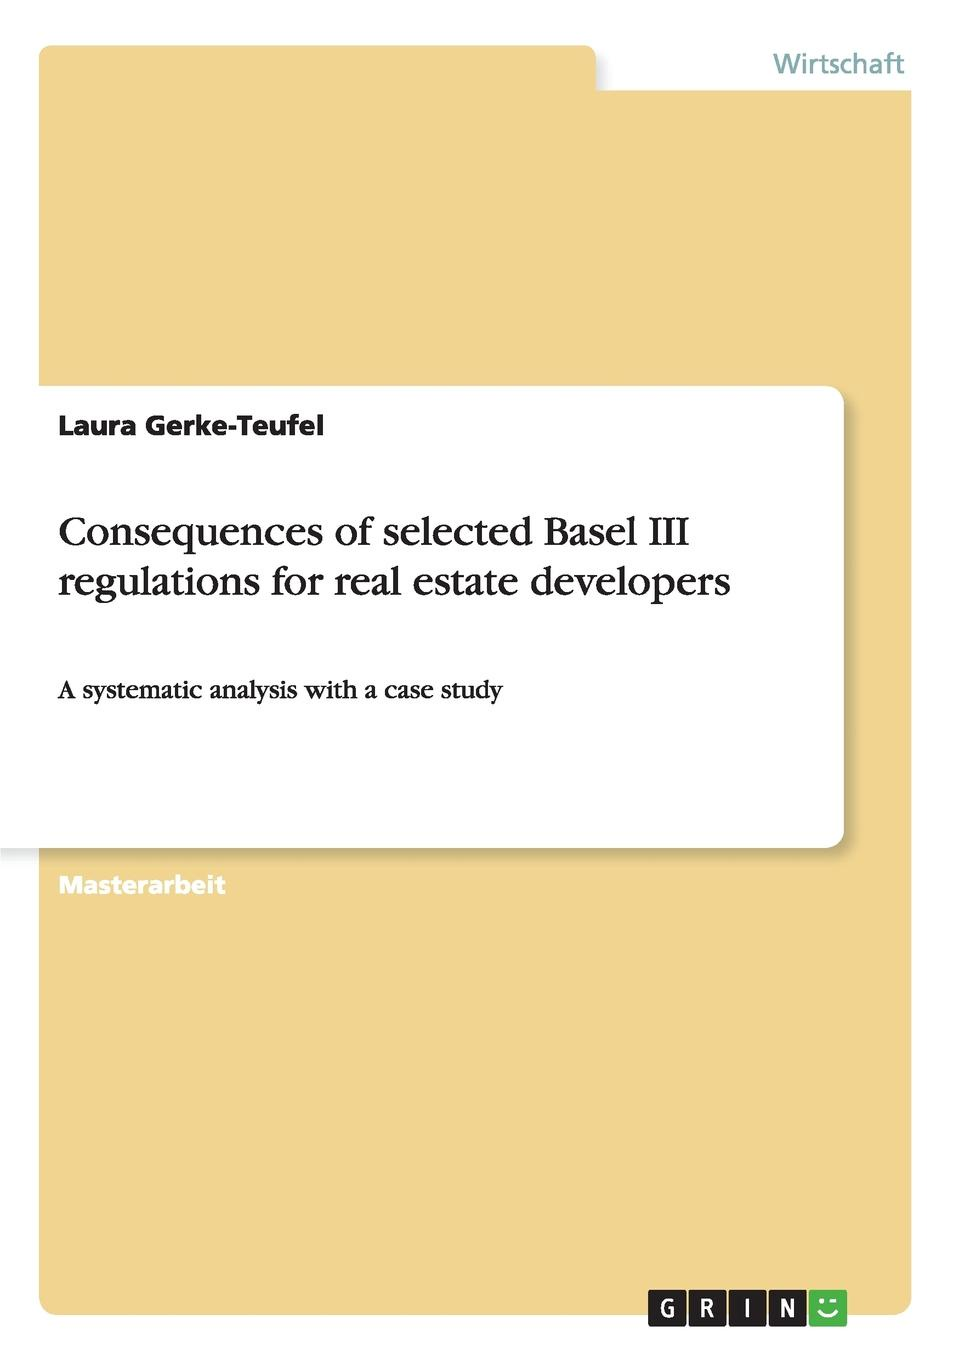 Laura Gerke-Teufel Consequences of selected Basel III regulations for real estate developers juan ramirez handbook of basel iii capital enhancing bank capital in practice